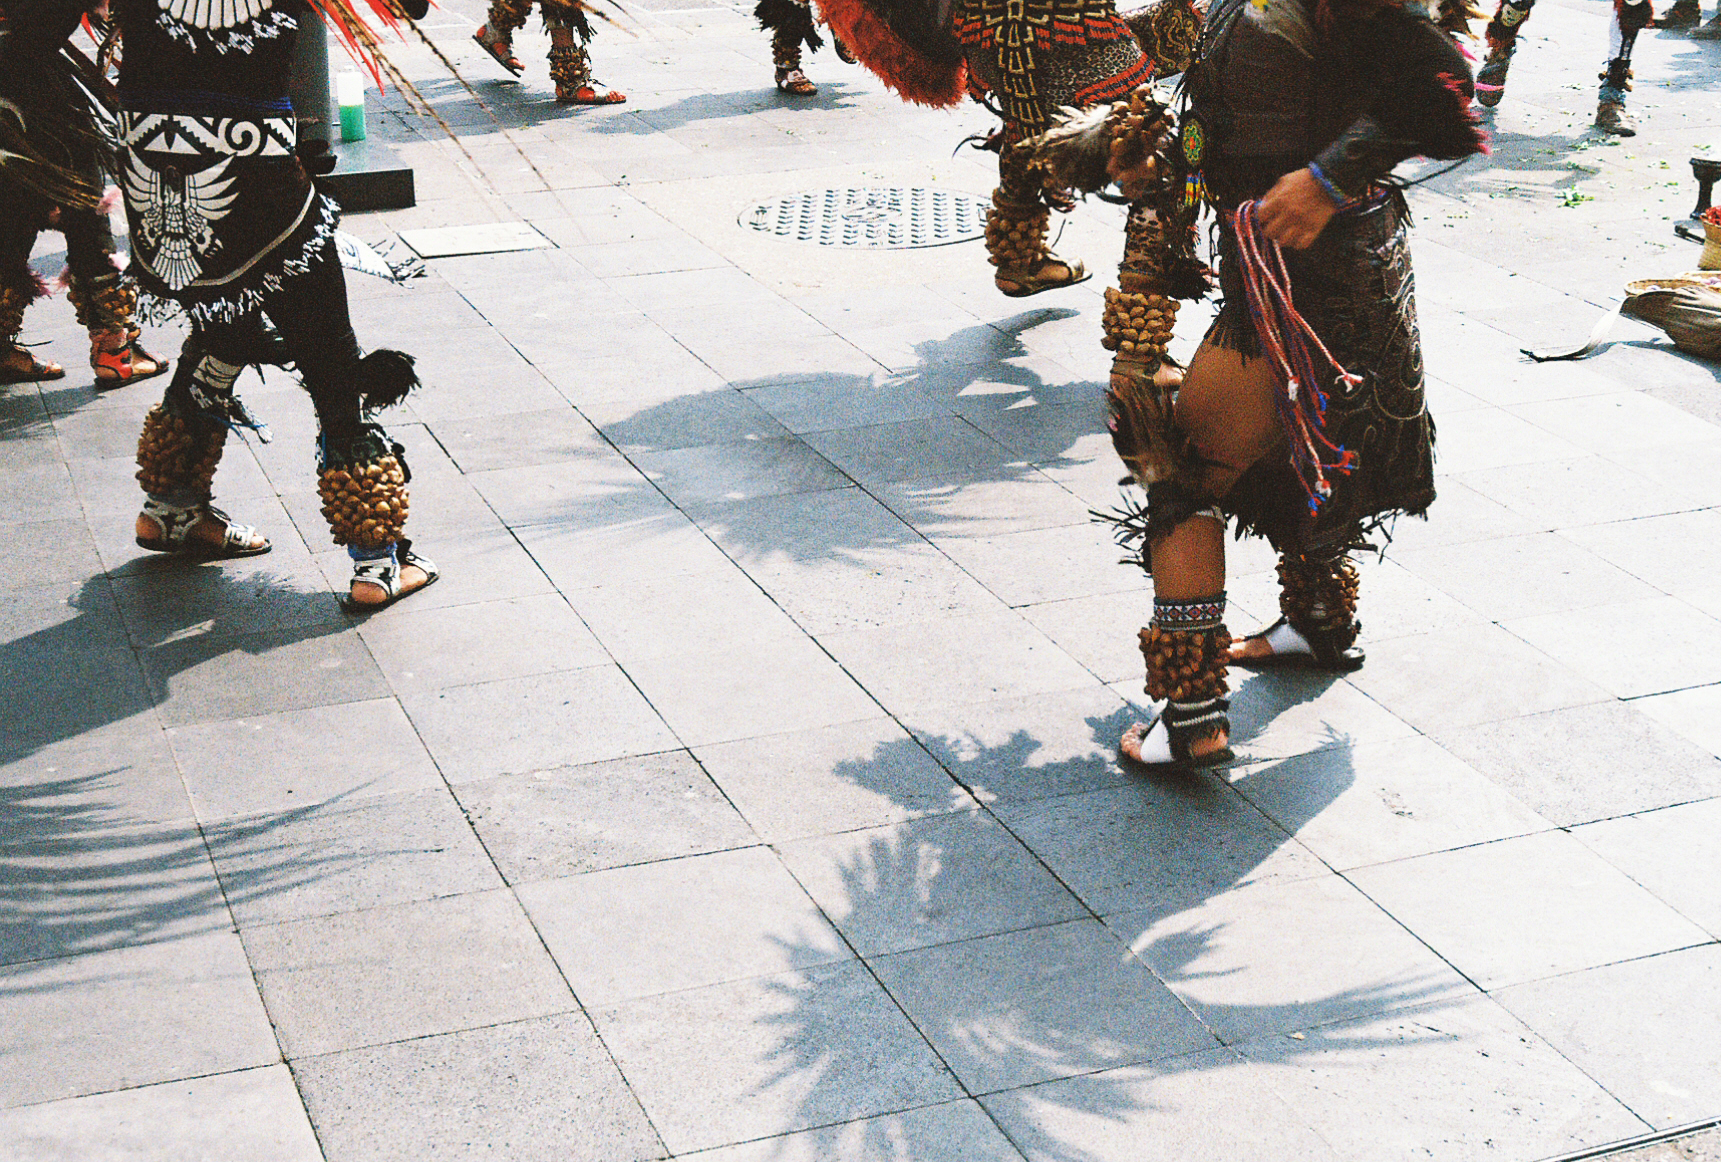 Native Aztecs performing ceremonial dance outside Mexico City Metropolitan Cathedral, shot on 35mm film